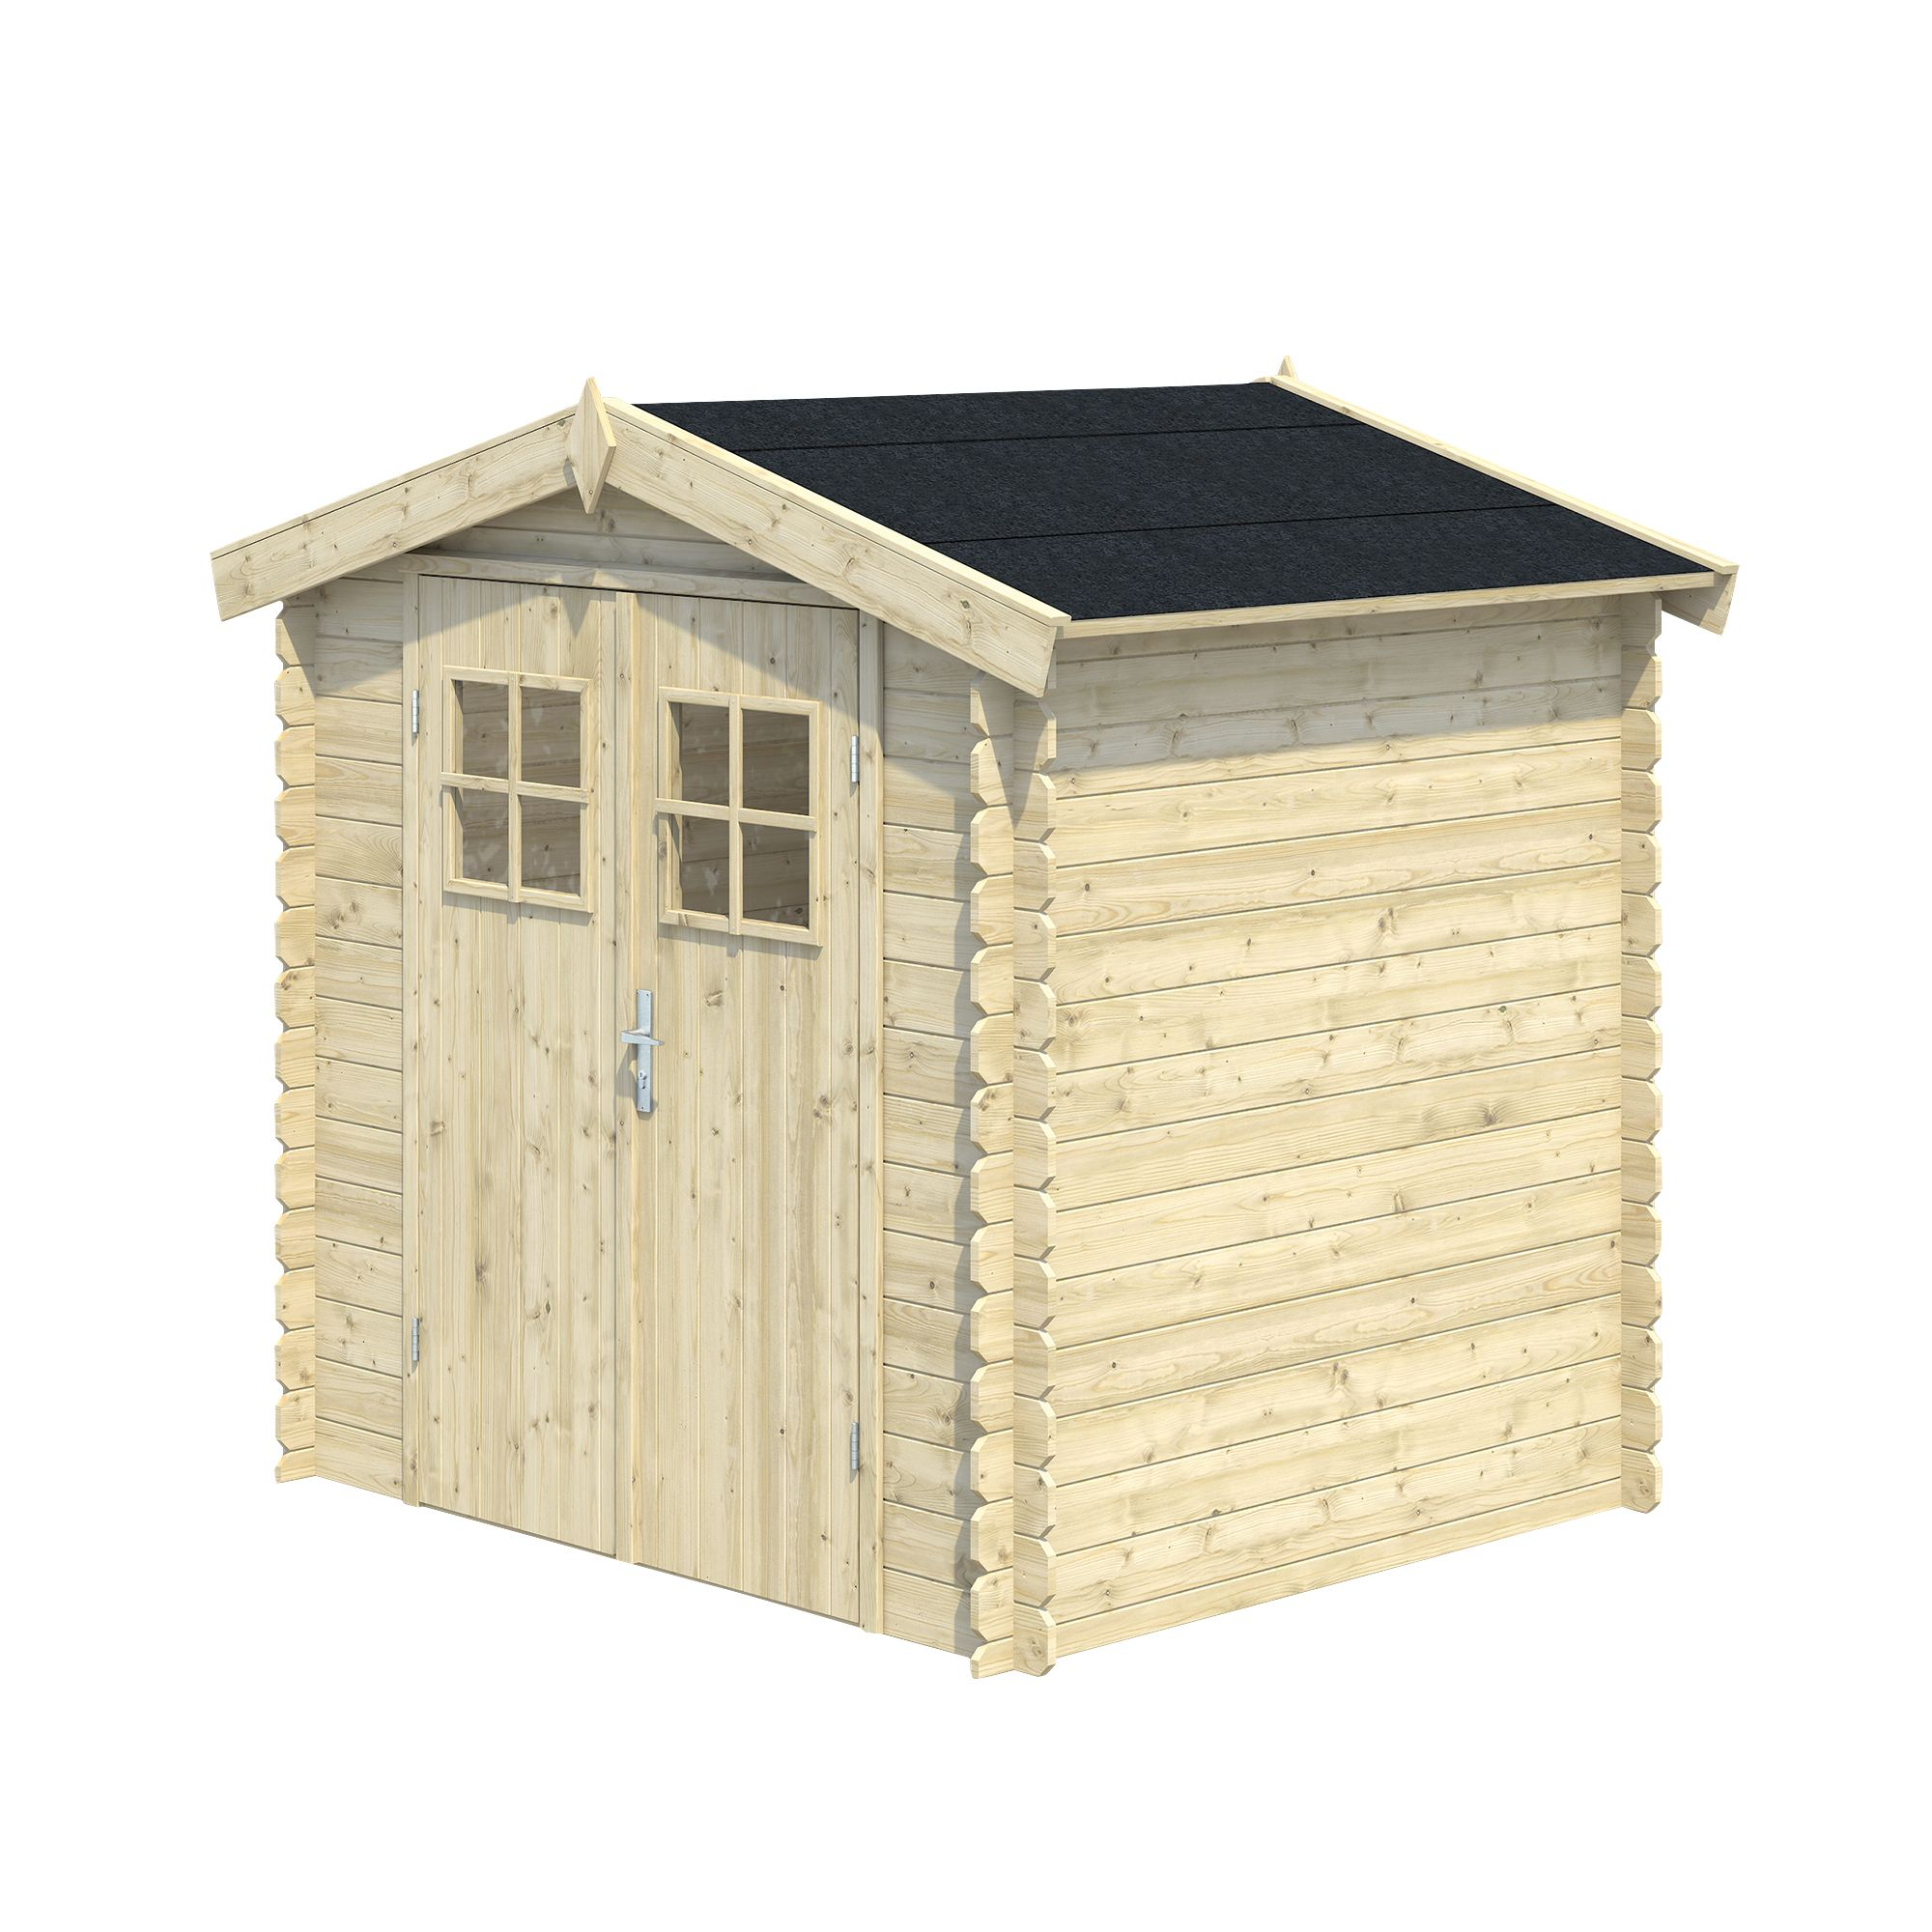 6x5 Mokau Apex Roof Tongue Amp Groove Wooden Shed With Floor